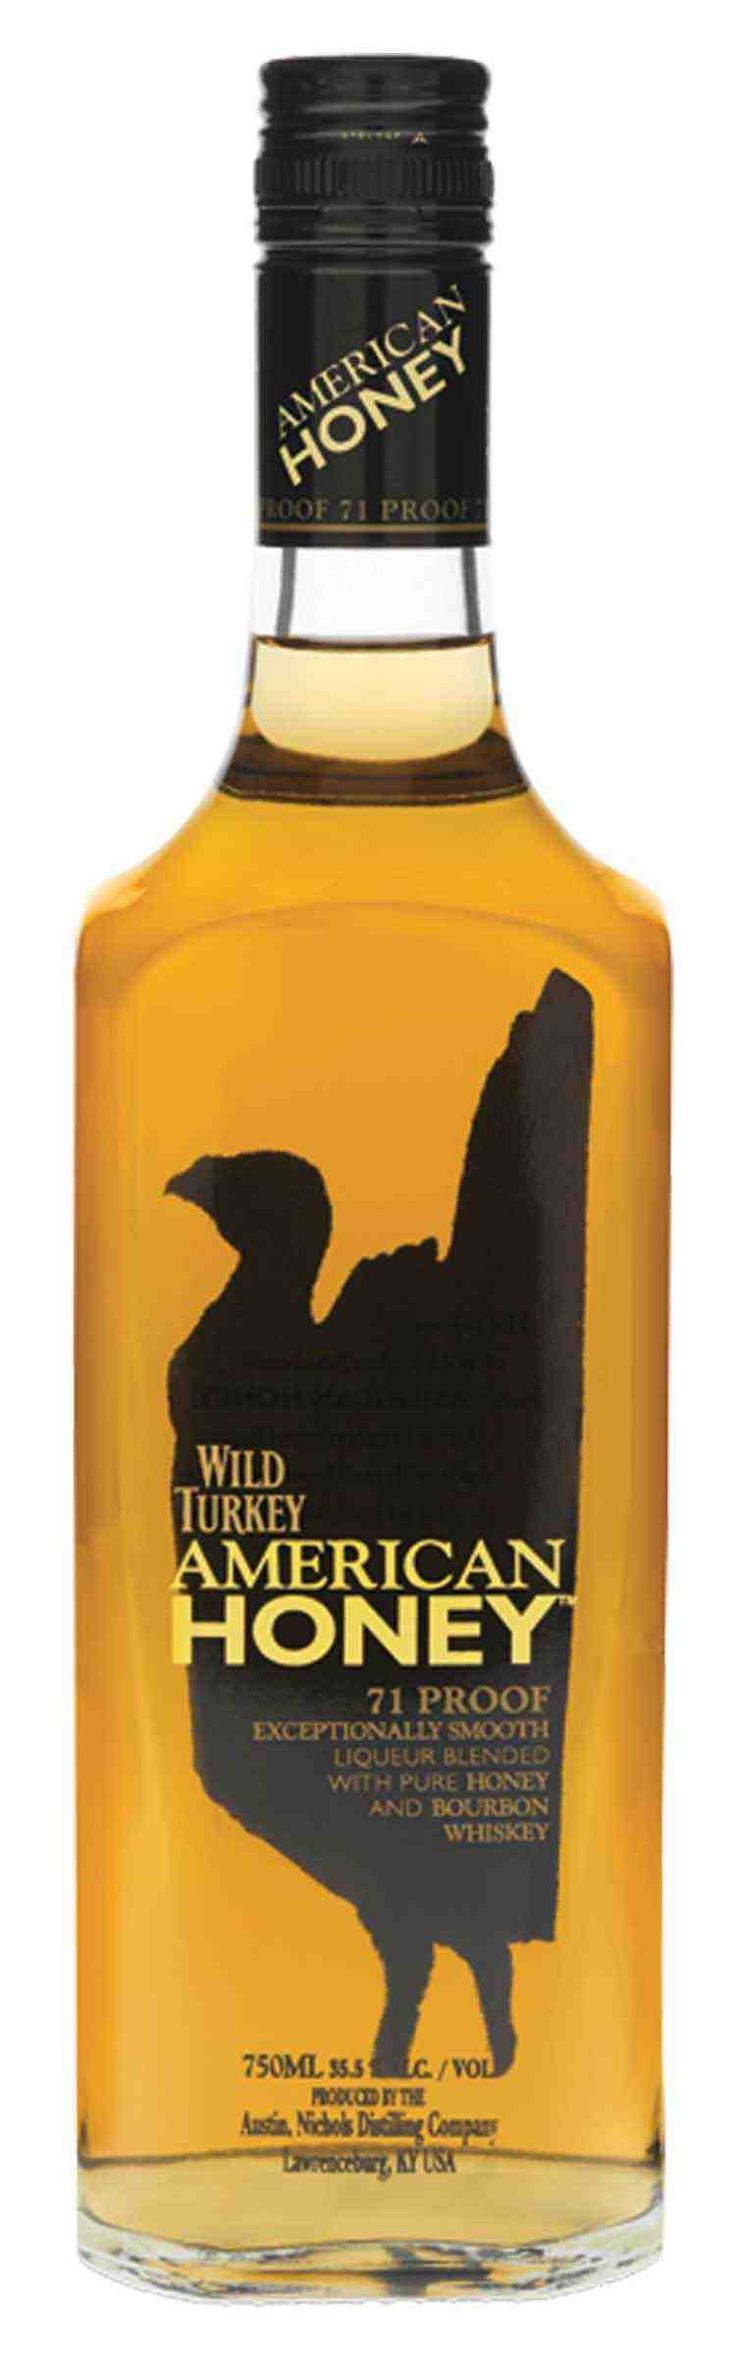 american honey whiskey | Wild Turkey American Honey Recipes and Bourbon Cocktails from ...